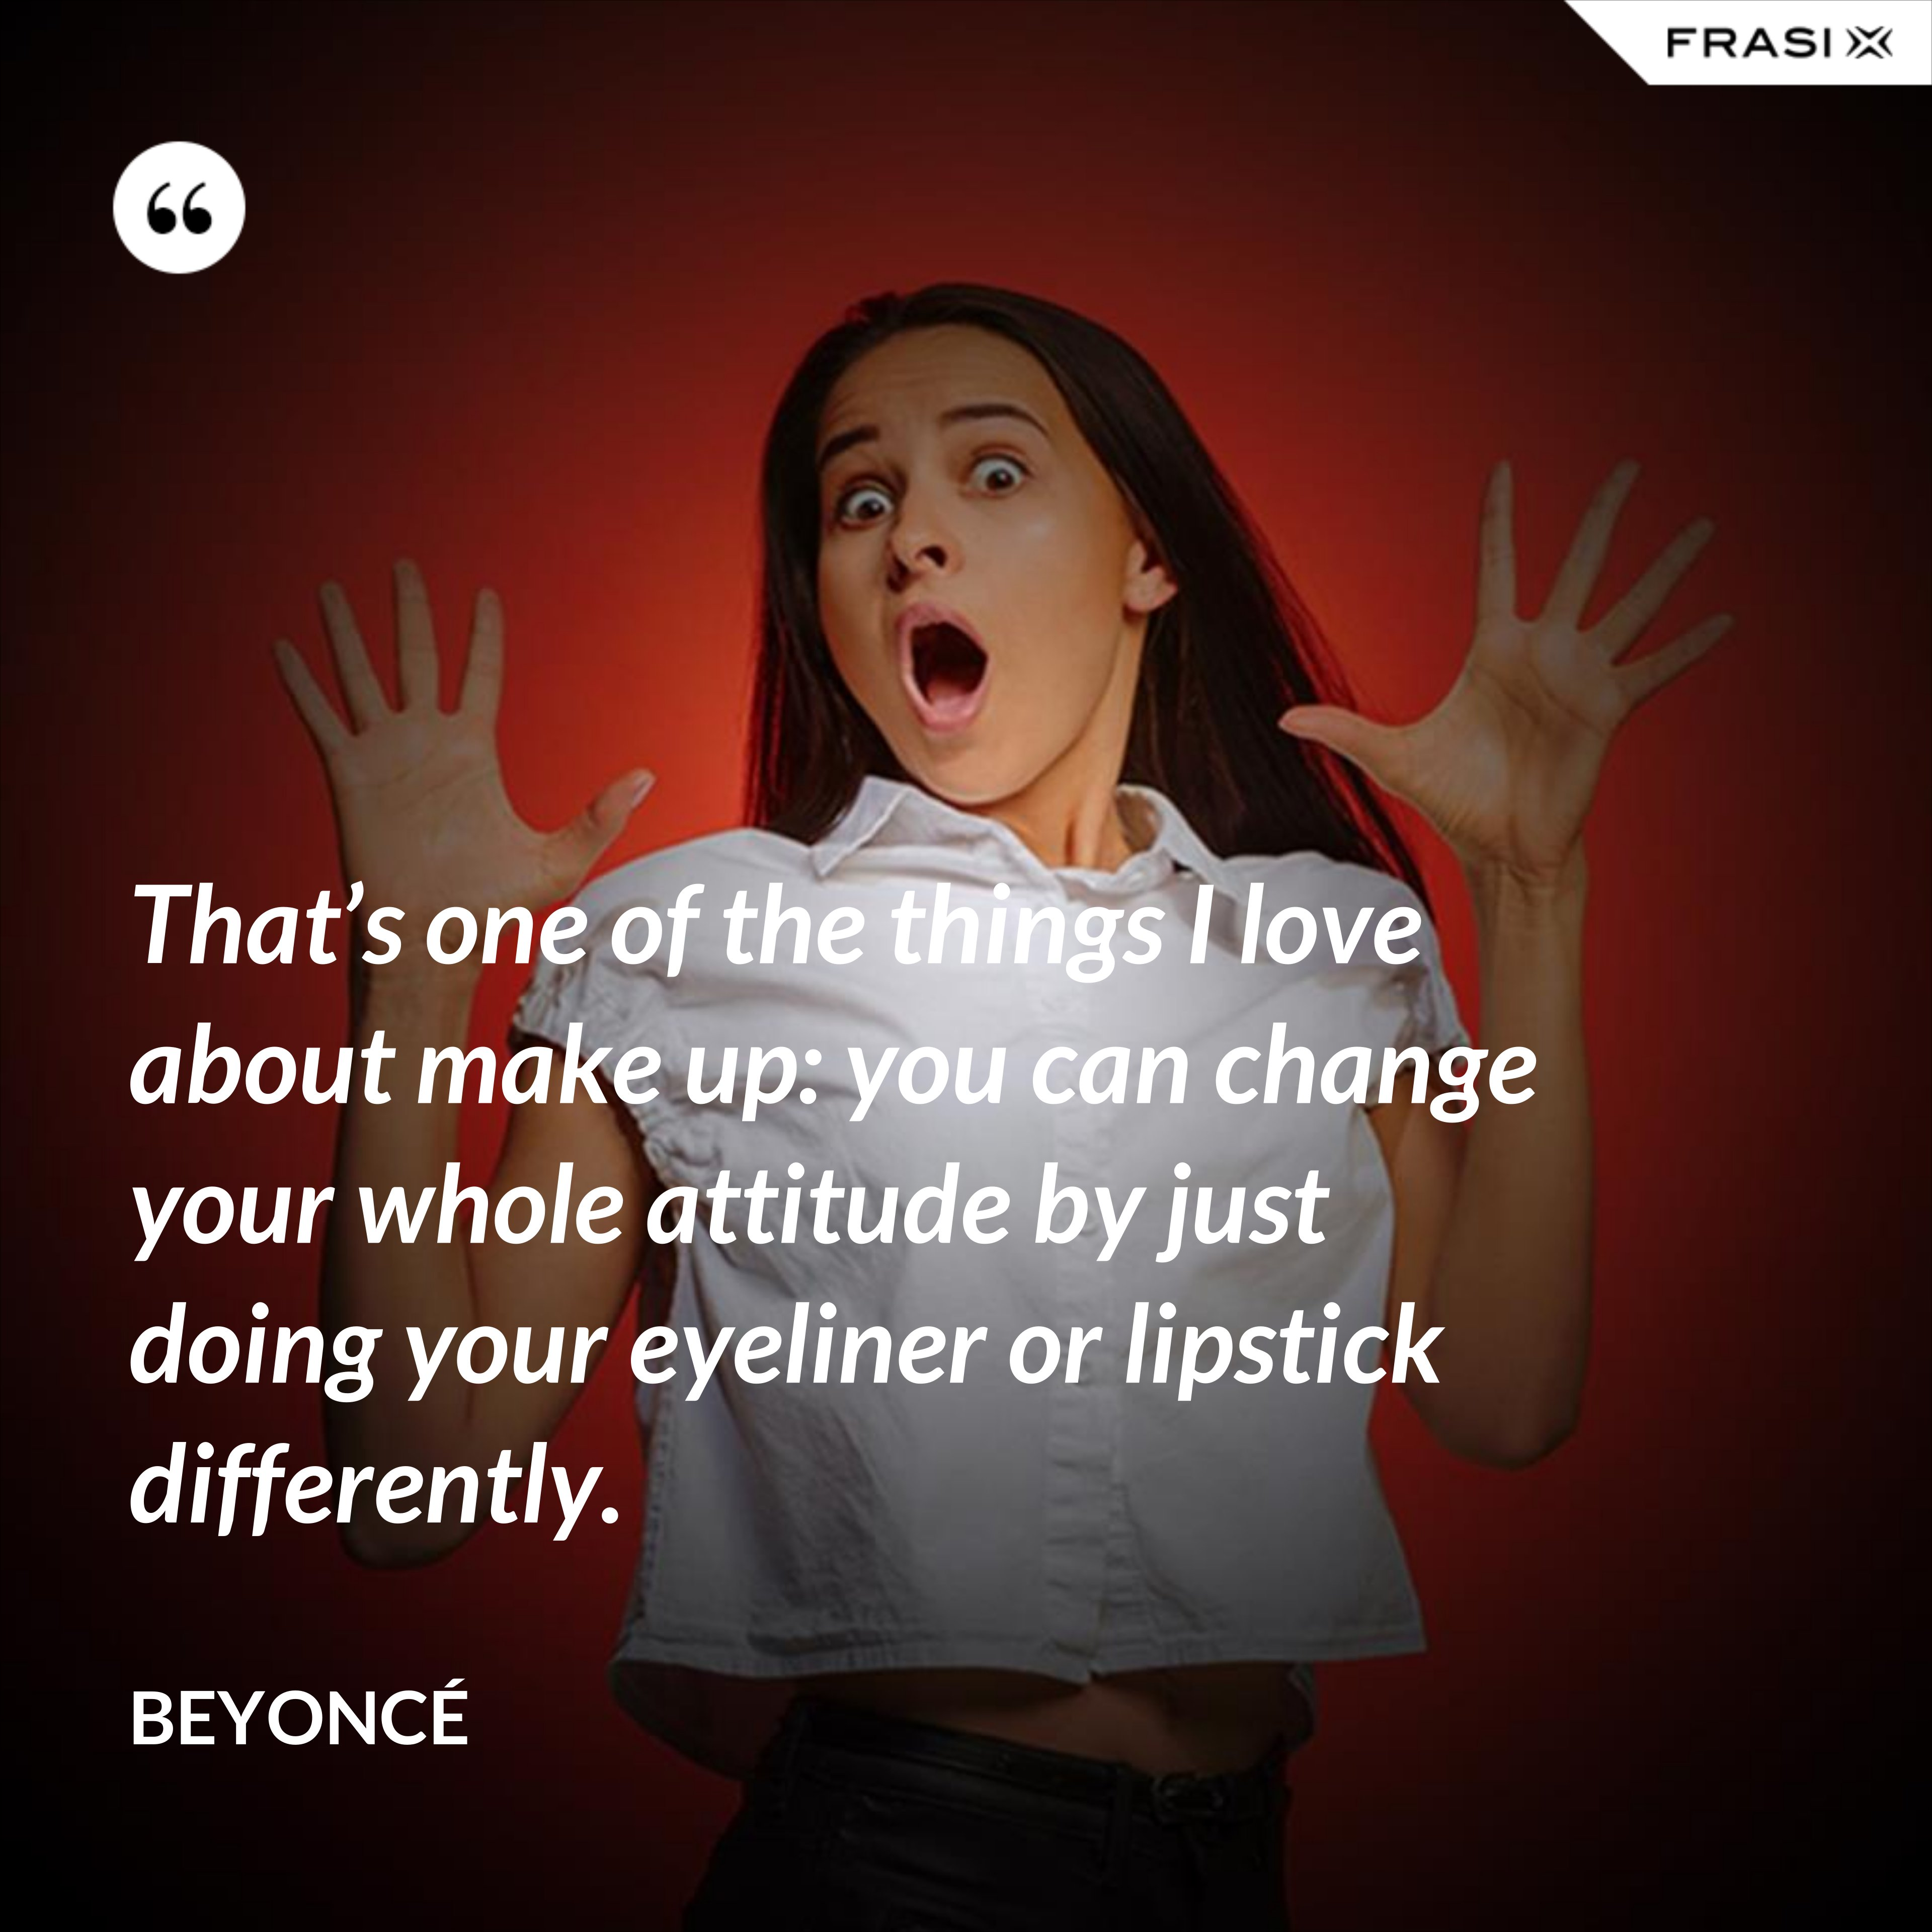 That's one of the things I love about make up: you can change your whole attitude by just doing your eyeliner or lipstick differently. - Beyoncé